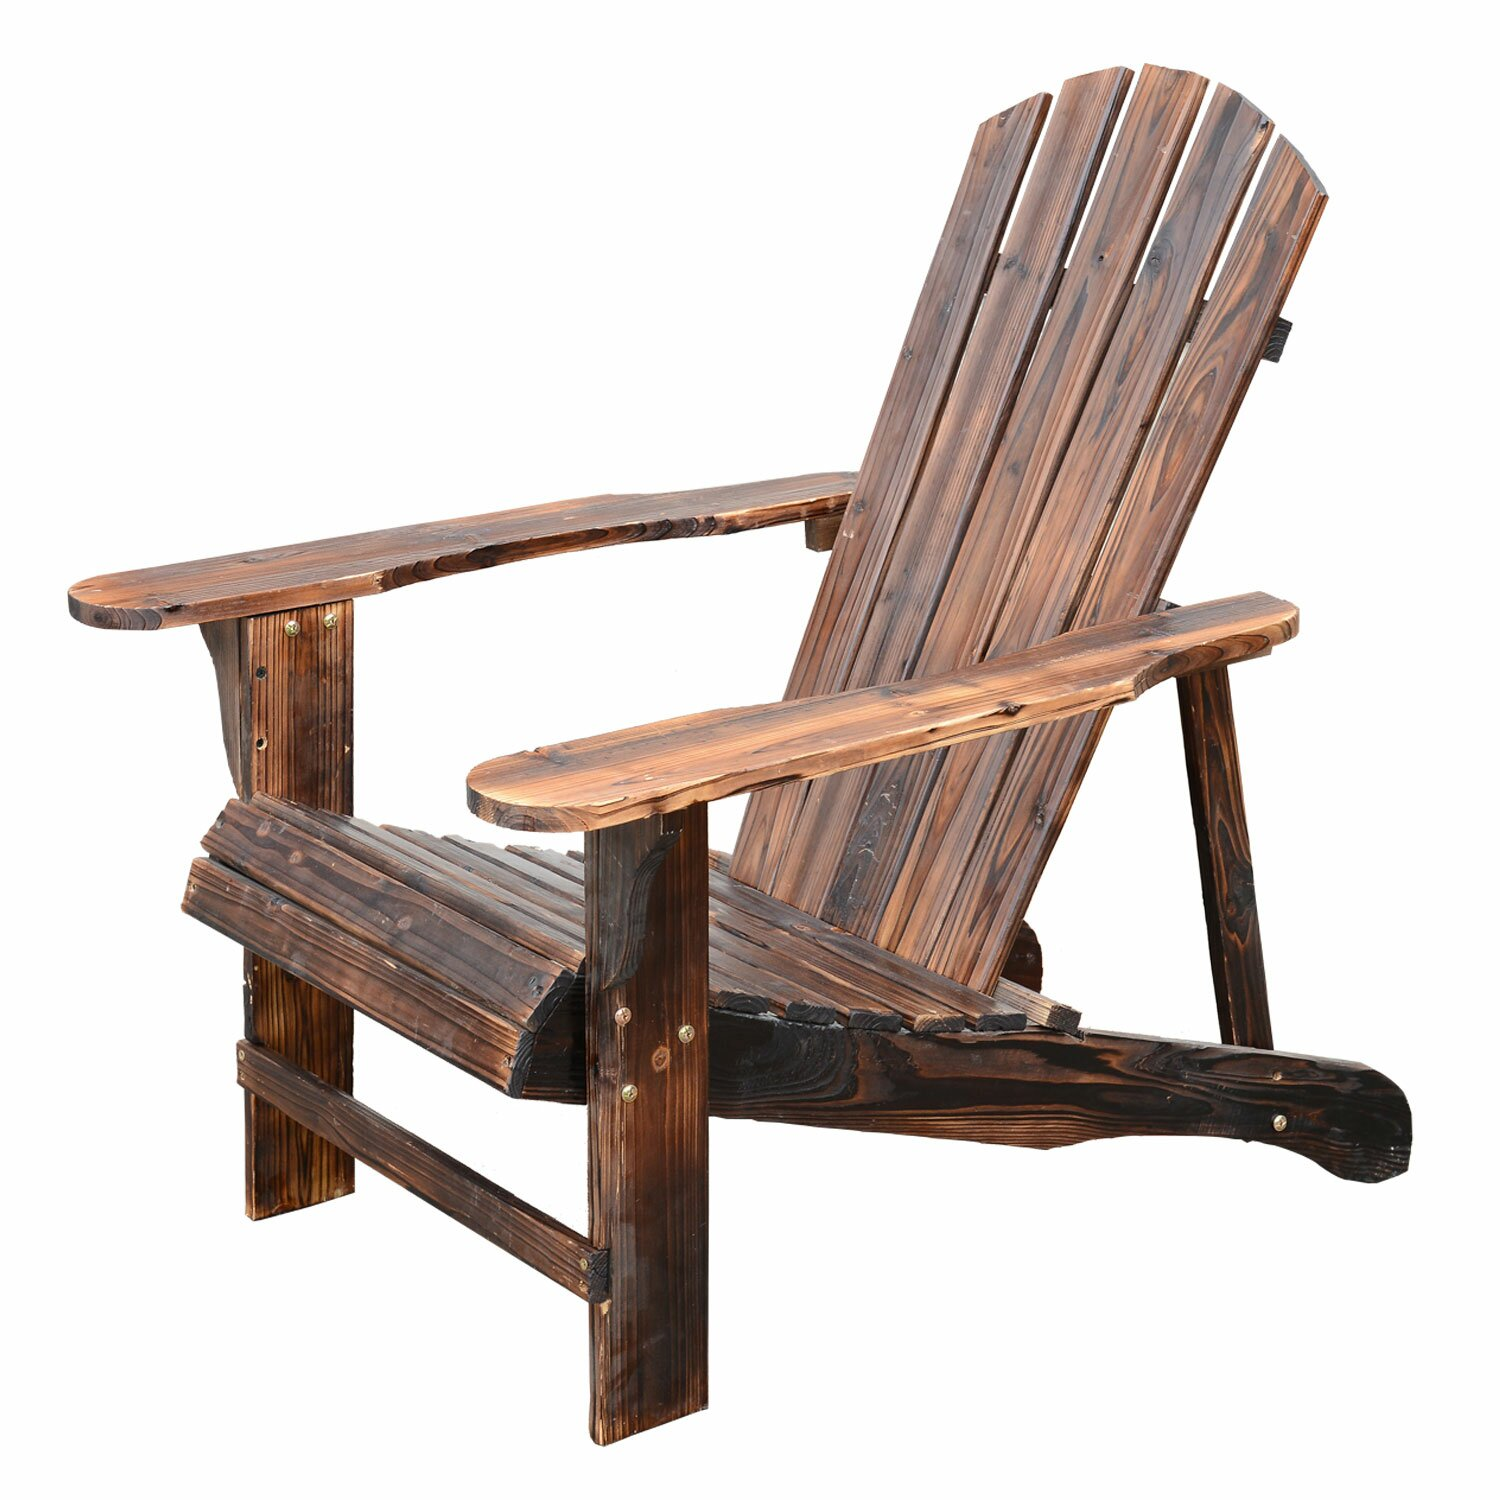 outsunny wooden adirondack outdoor patio lounge chair. Black Bedroom Furniture Sets. Home Design Ideas